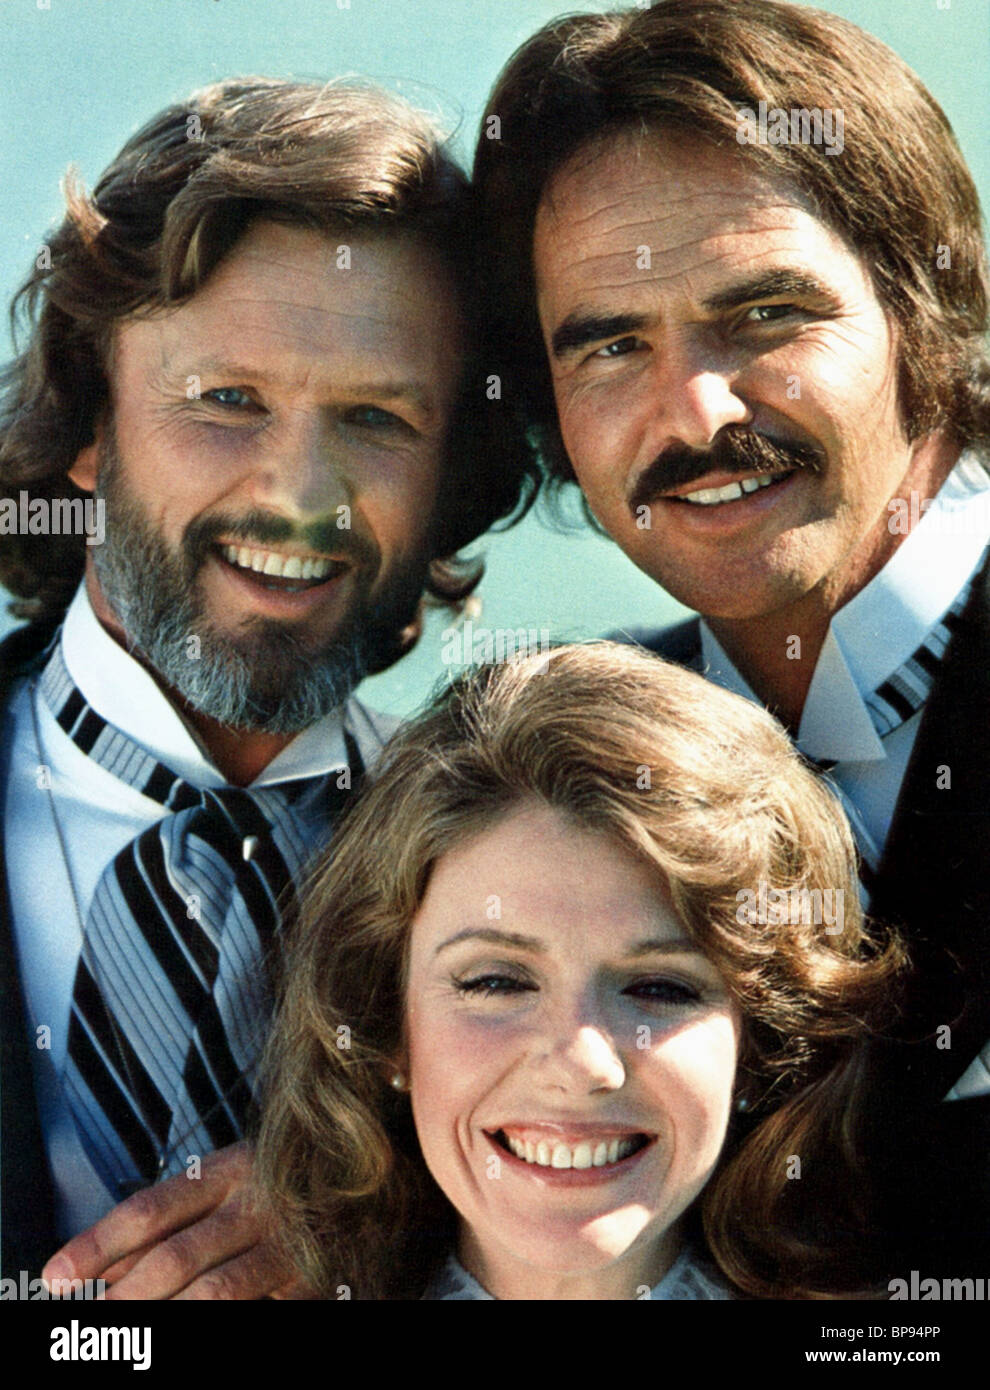 Billy ritchie stock photos billy ritchie stock images alamy kris kristofferson burt reynolds jill clayburgh semi tough 1977 stock image altavistaventures Images